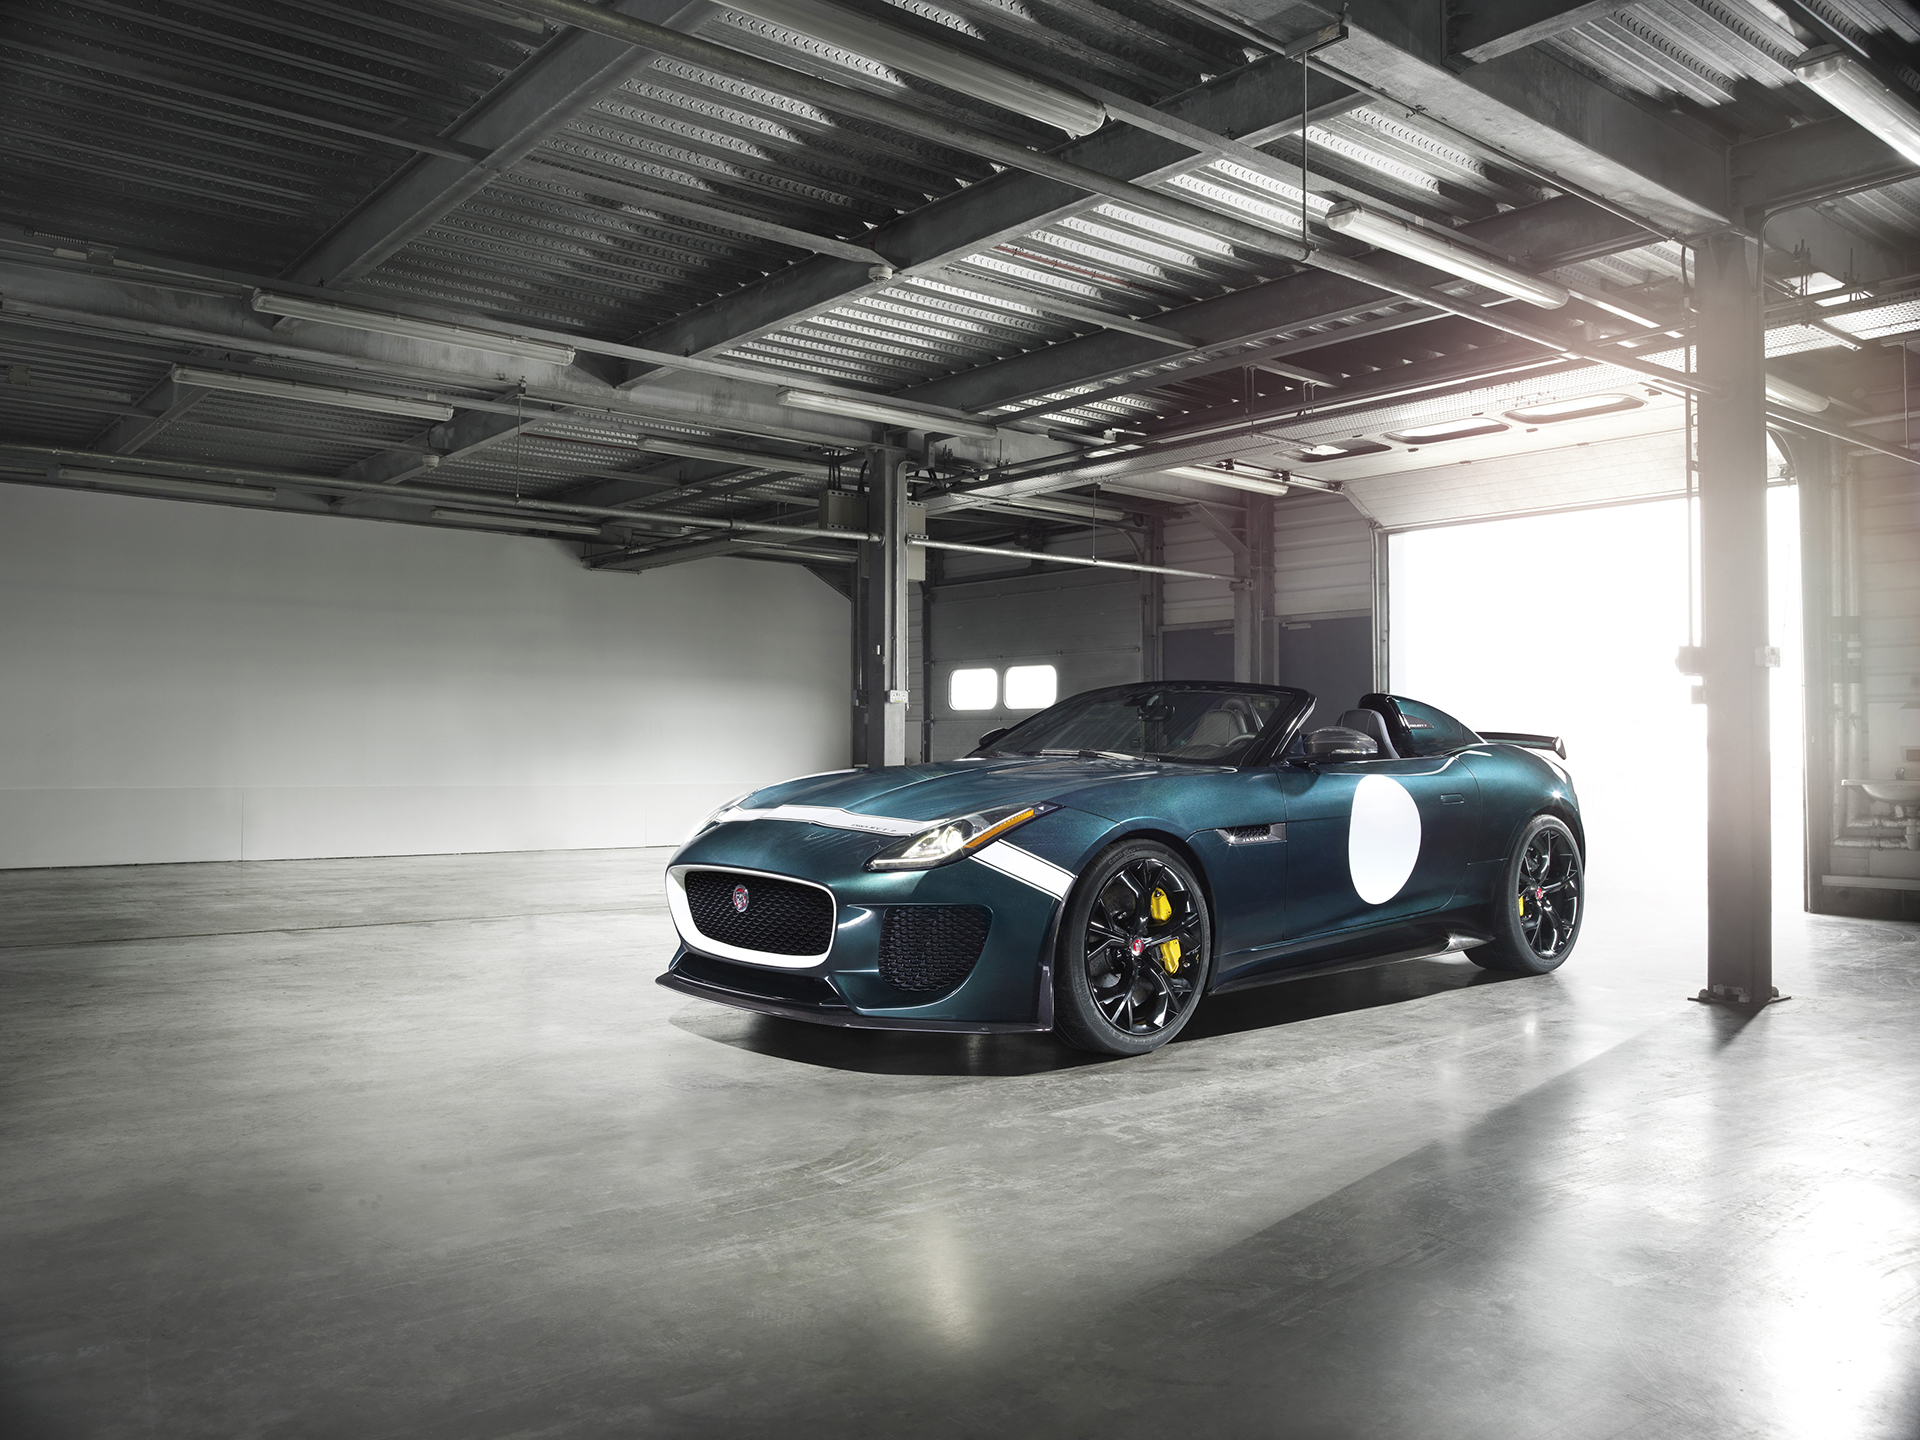 Jaguar F-TYPE Project 7 - front side-face / profil avant